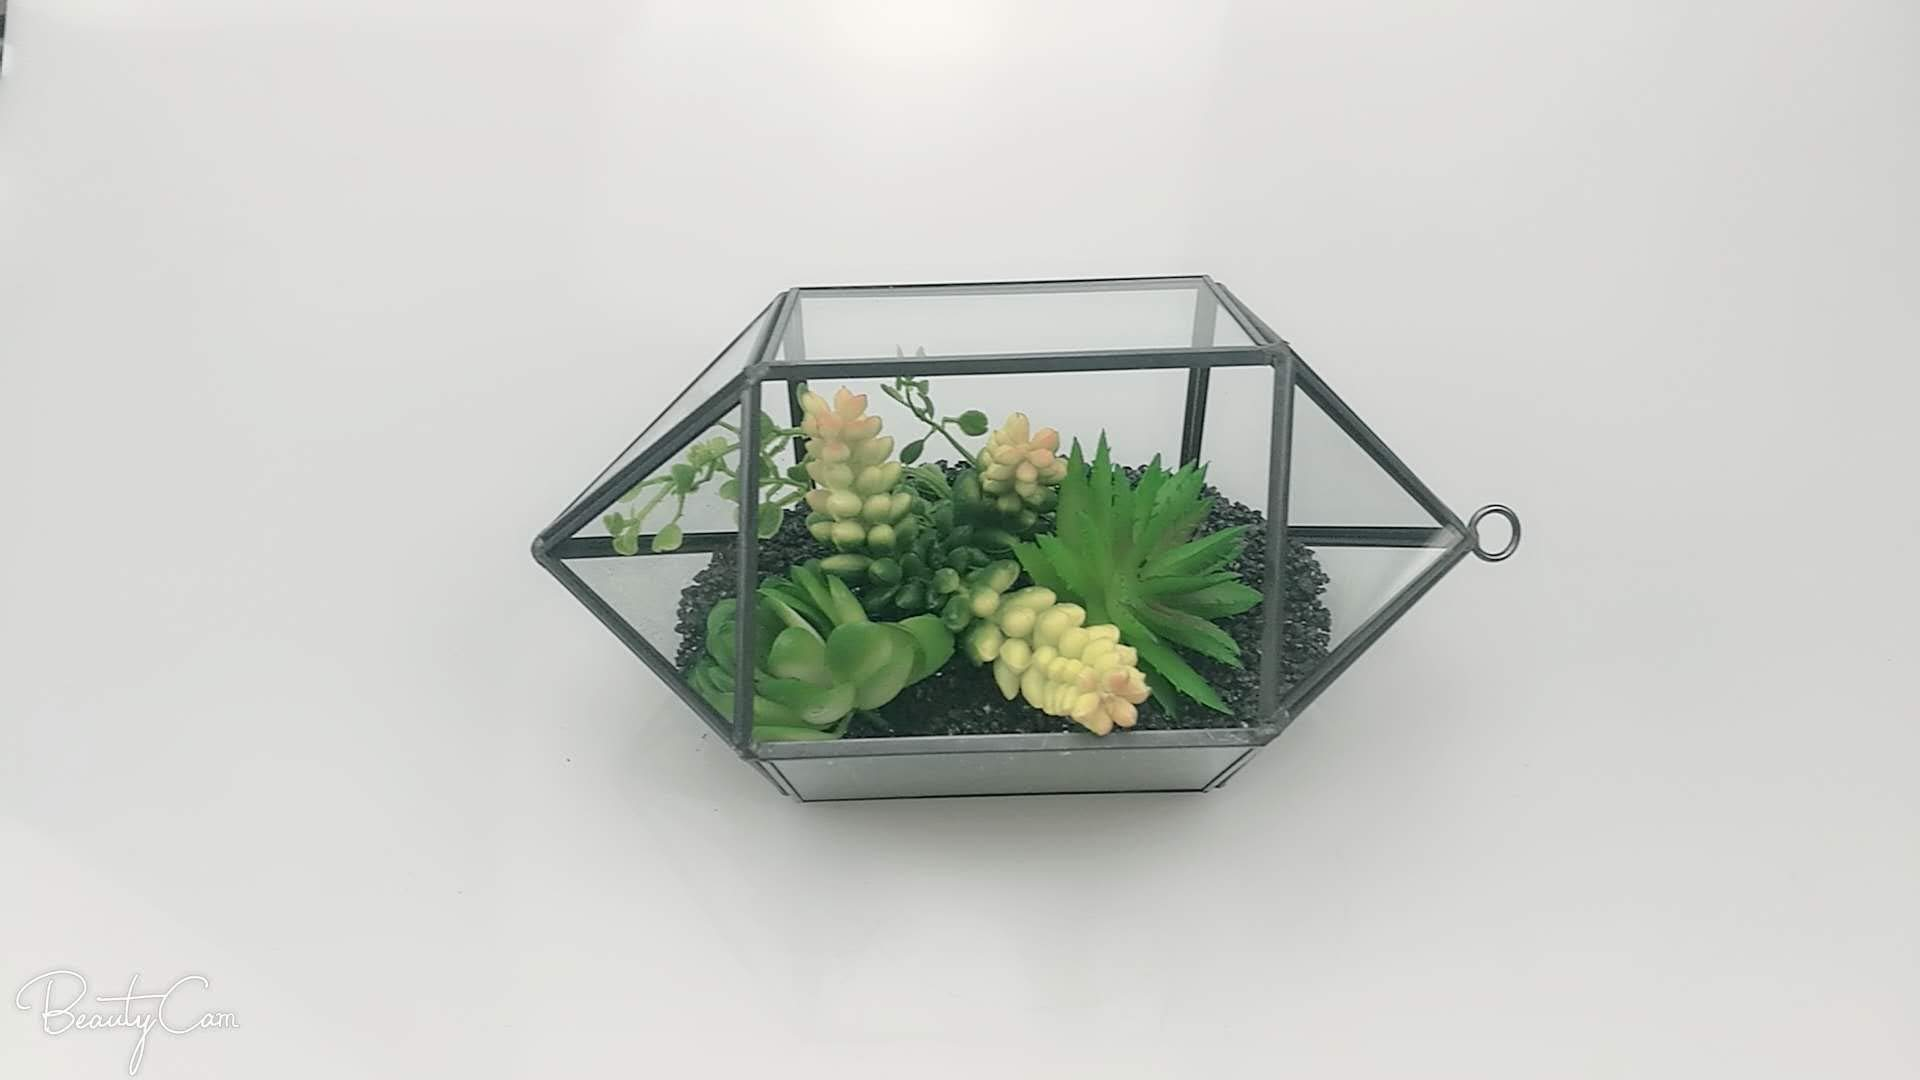 Large Geometric Glass Terrarium Handmade Irregular Planter Indoor